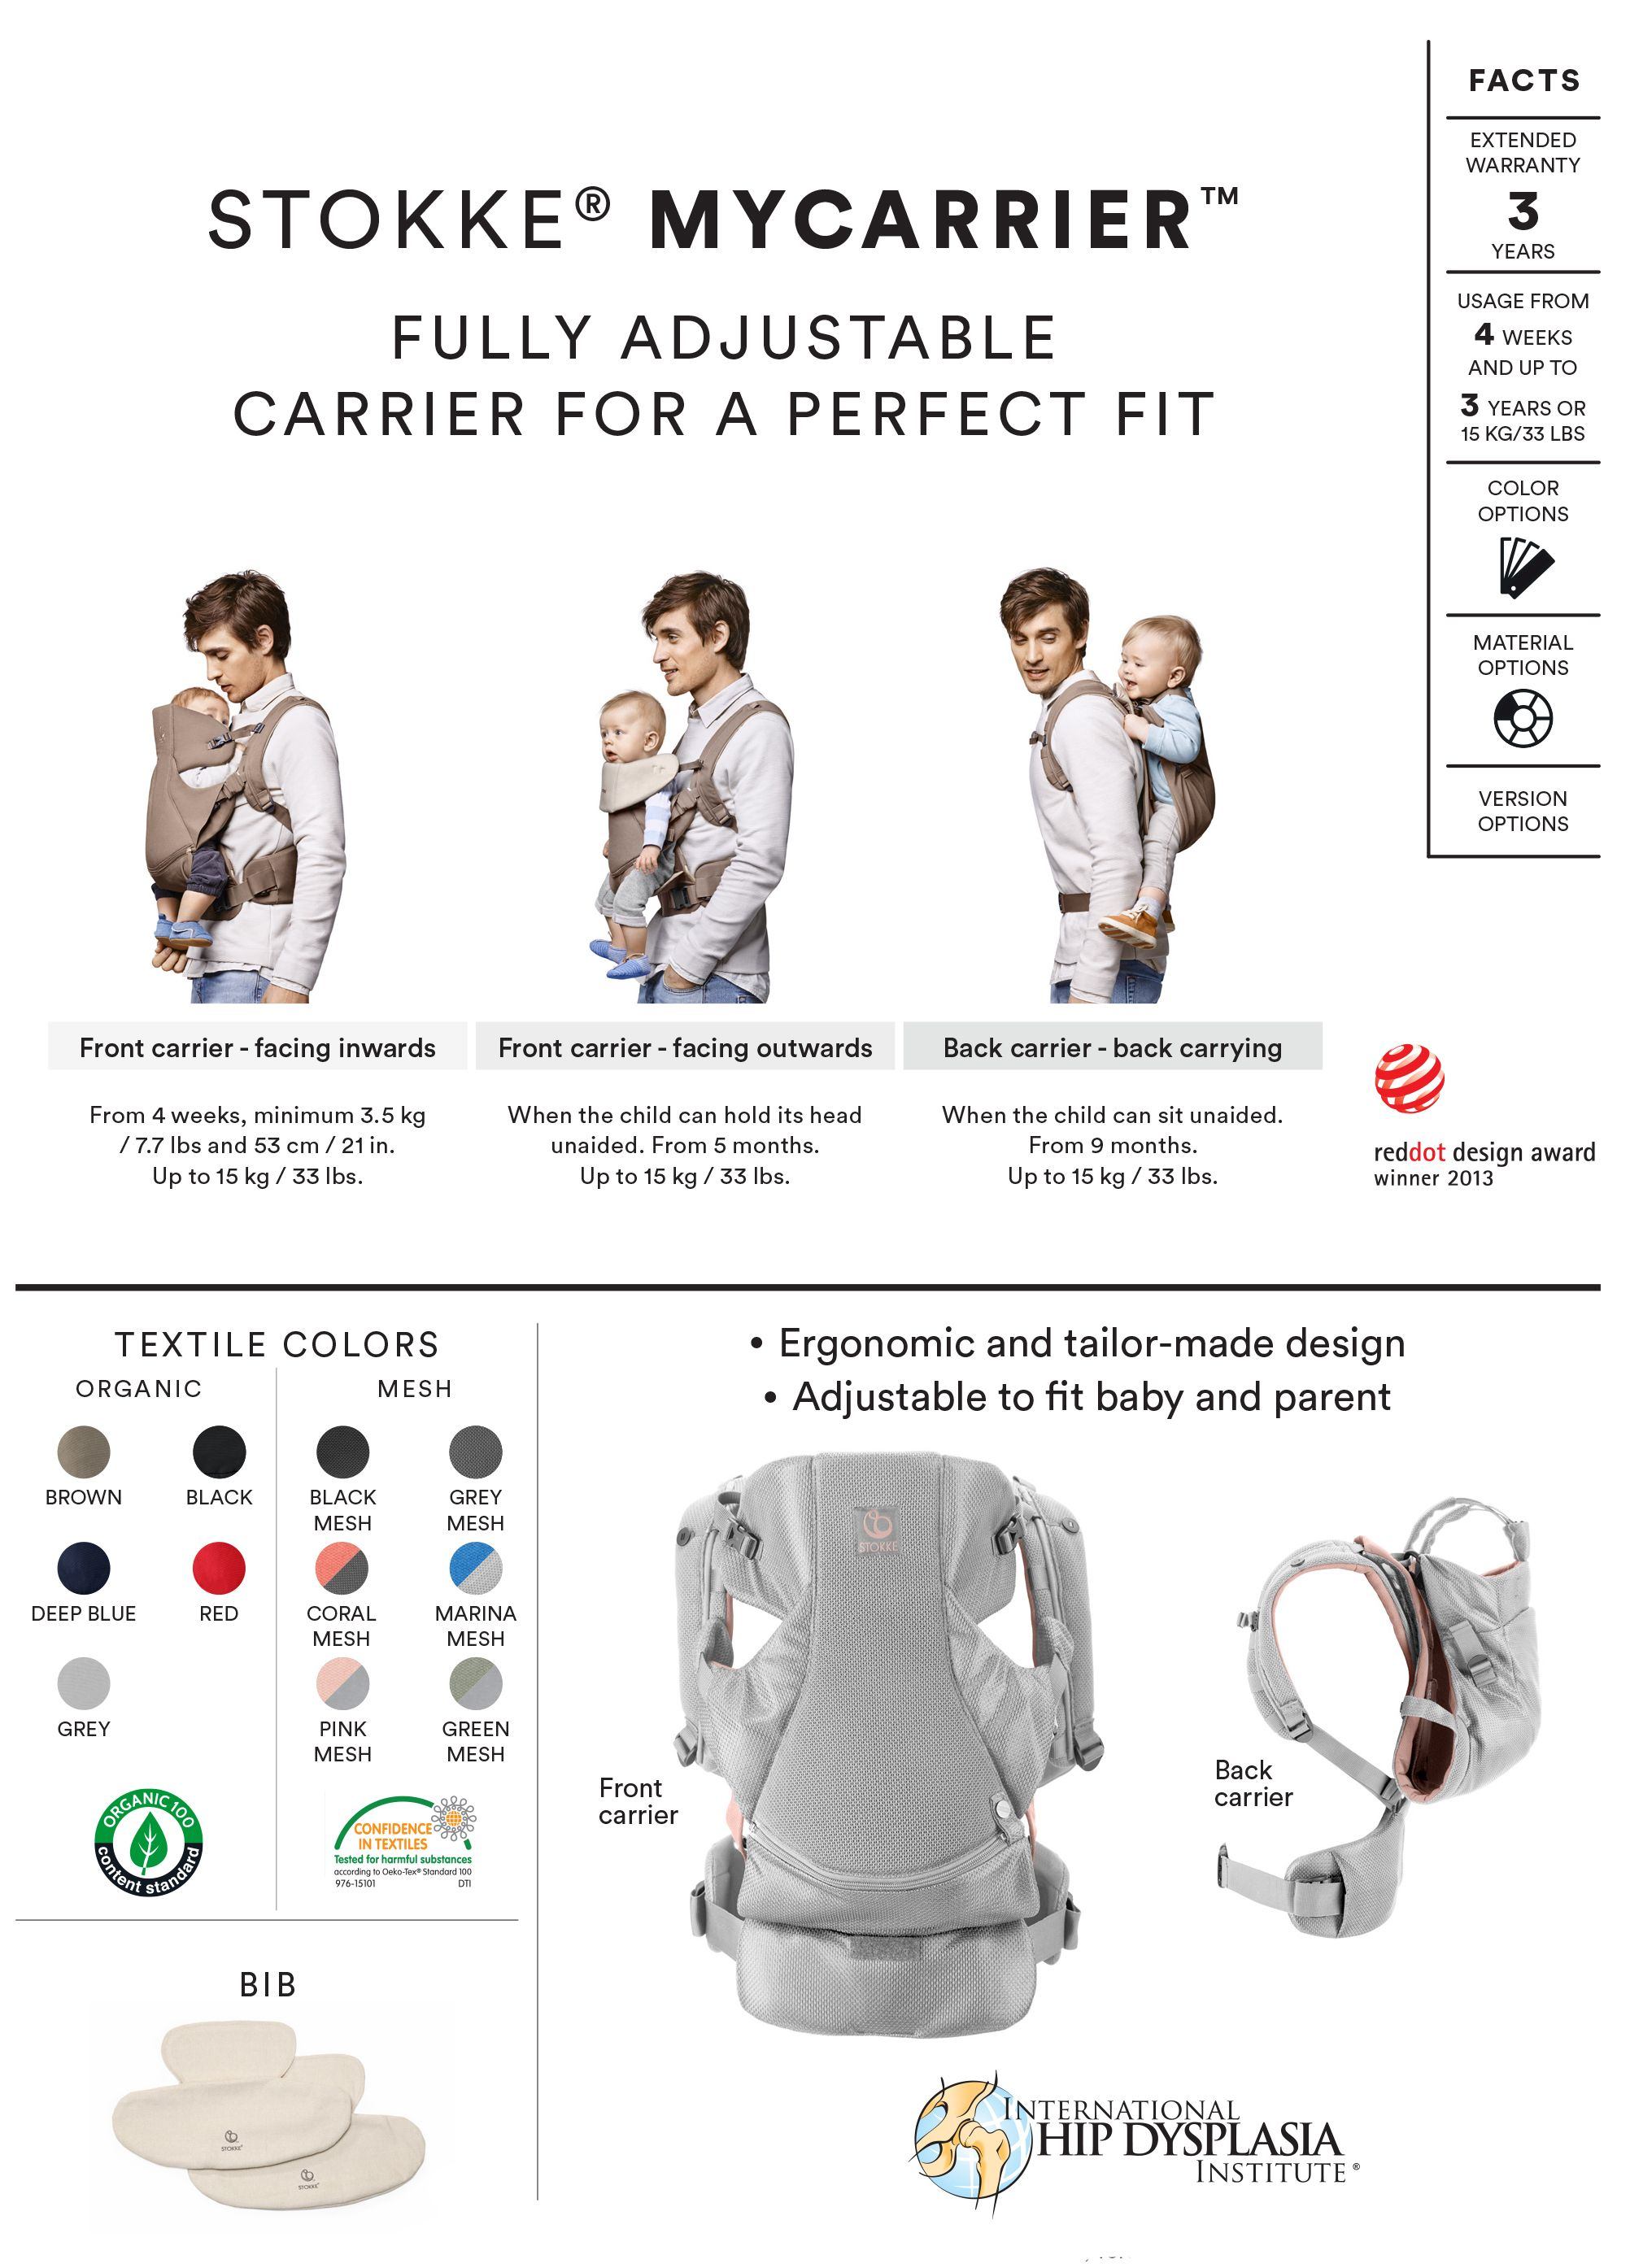 53a1c6a39cb The Stokke MyCarrier baby carrier has been created so that your baby is  ergonomically and correctly seated in all positions to ensure healthy  development.